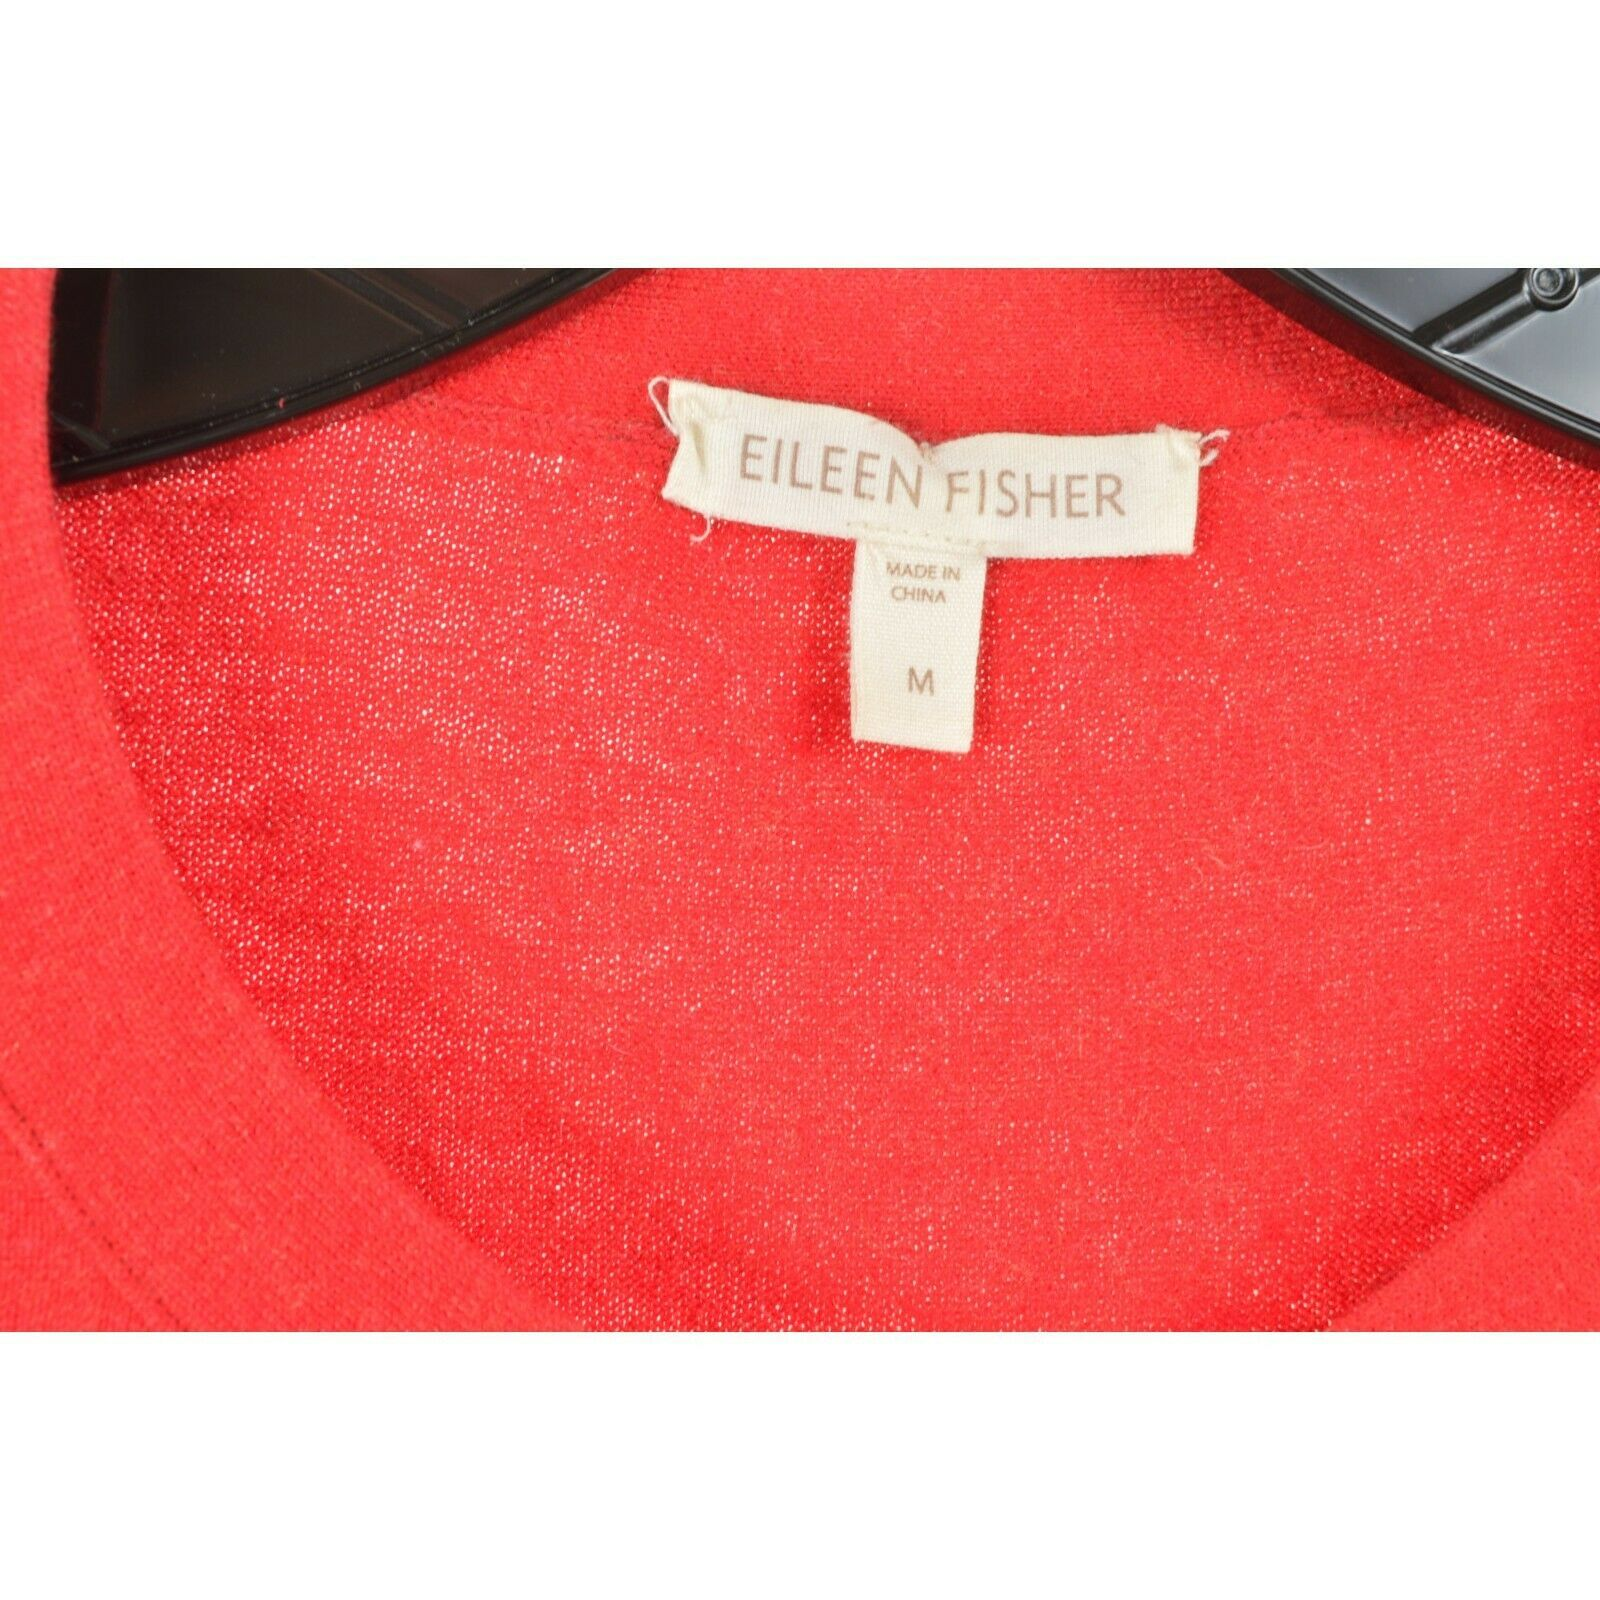 Eileen Fisher sweater M red cardigan 3/4 sleeves organic cotton cashmere blend image 6